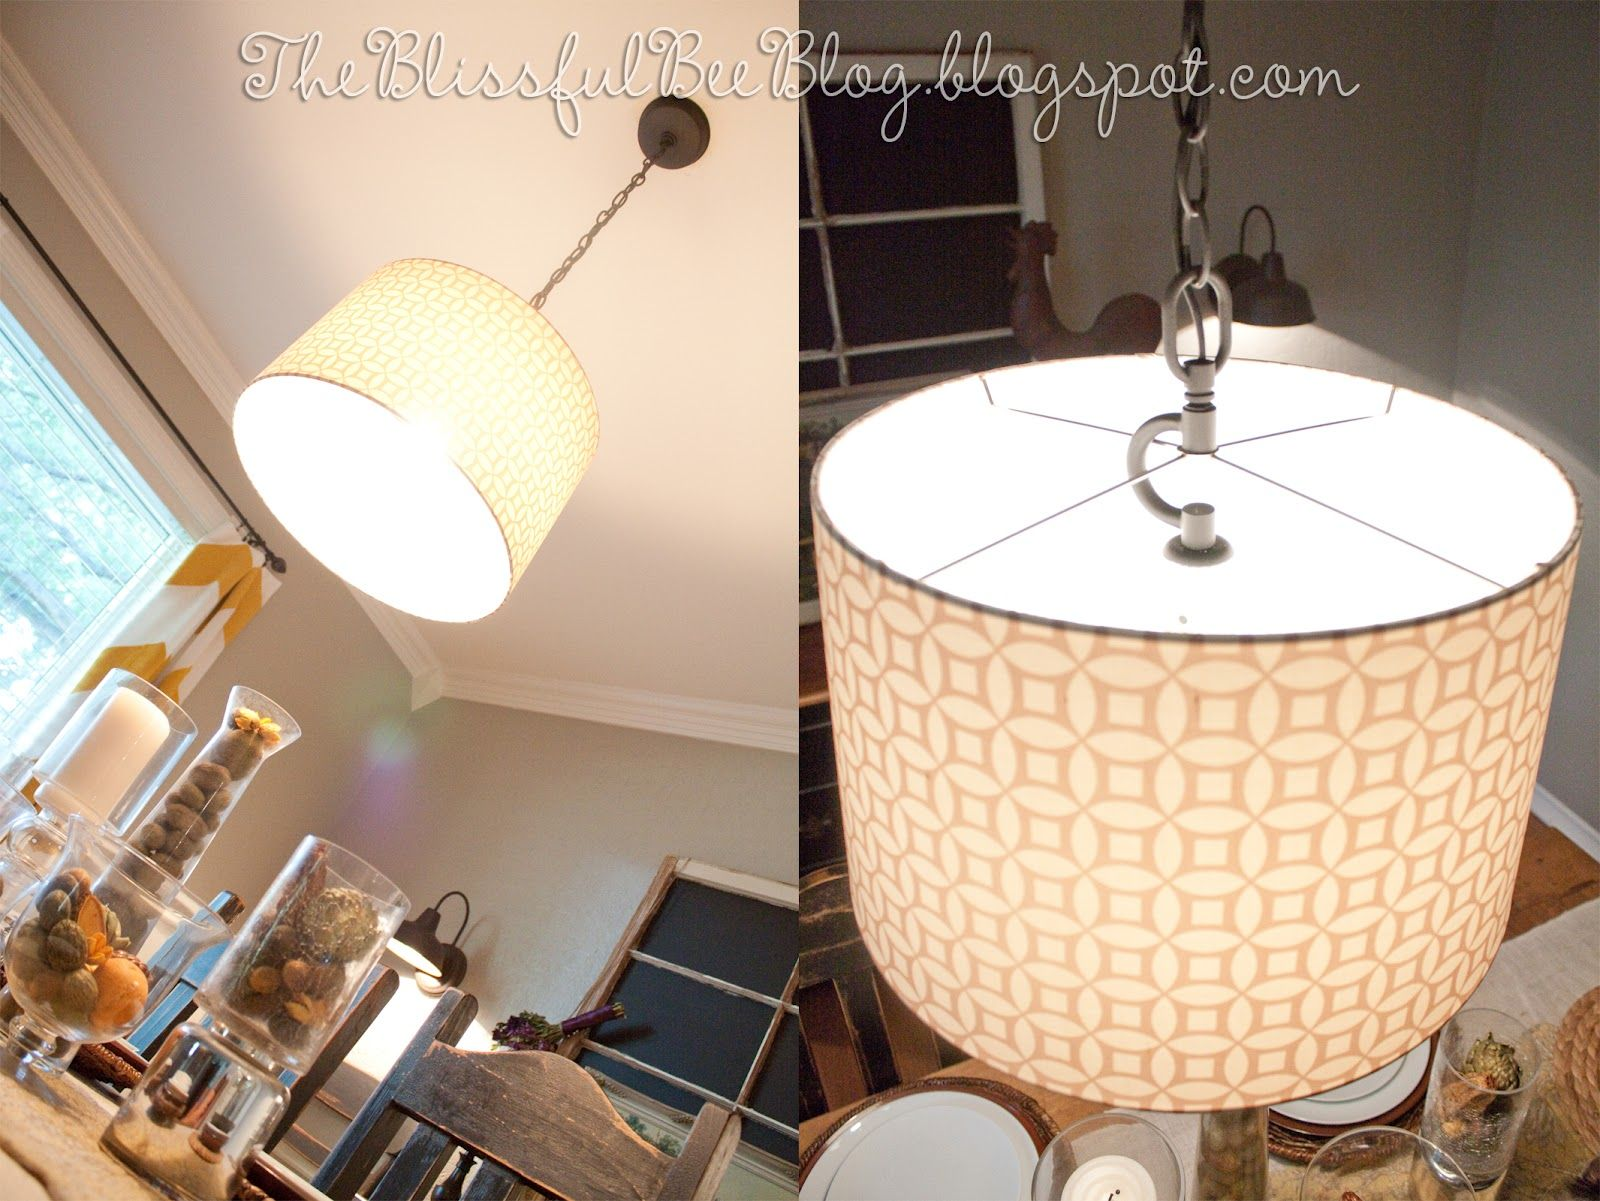 The Blissful Bee: DIY Hanging {Drum} Light Fixture...for Over